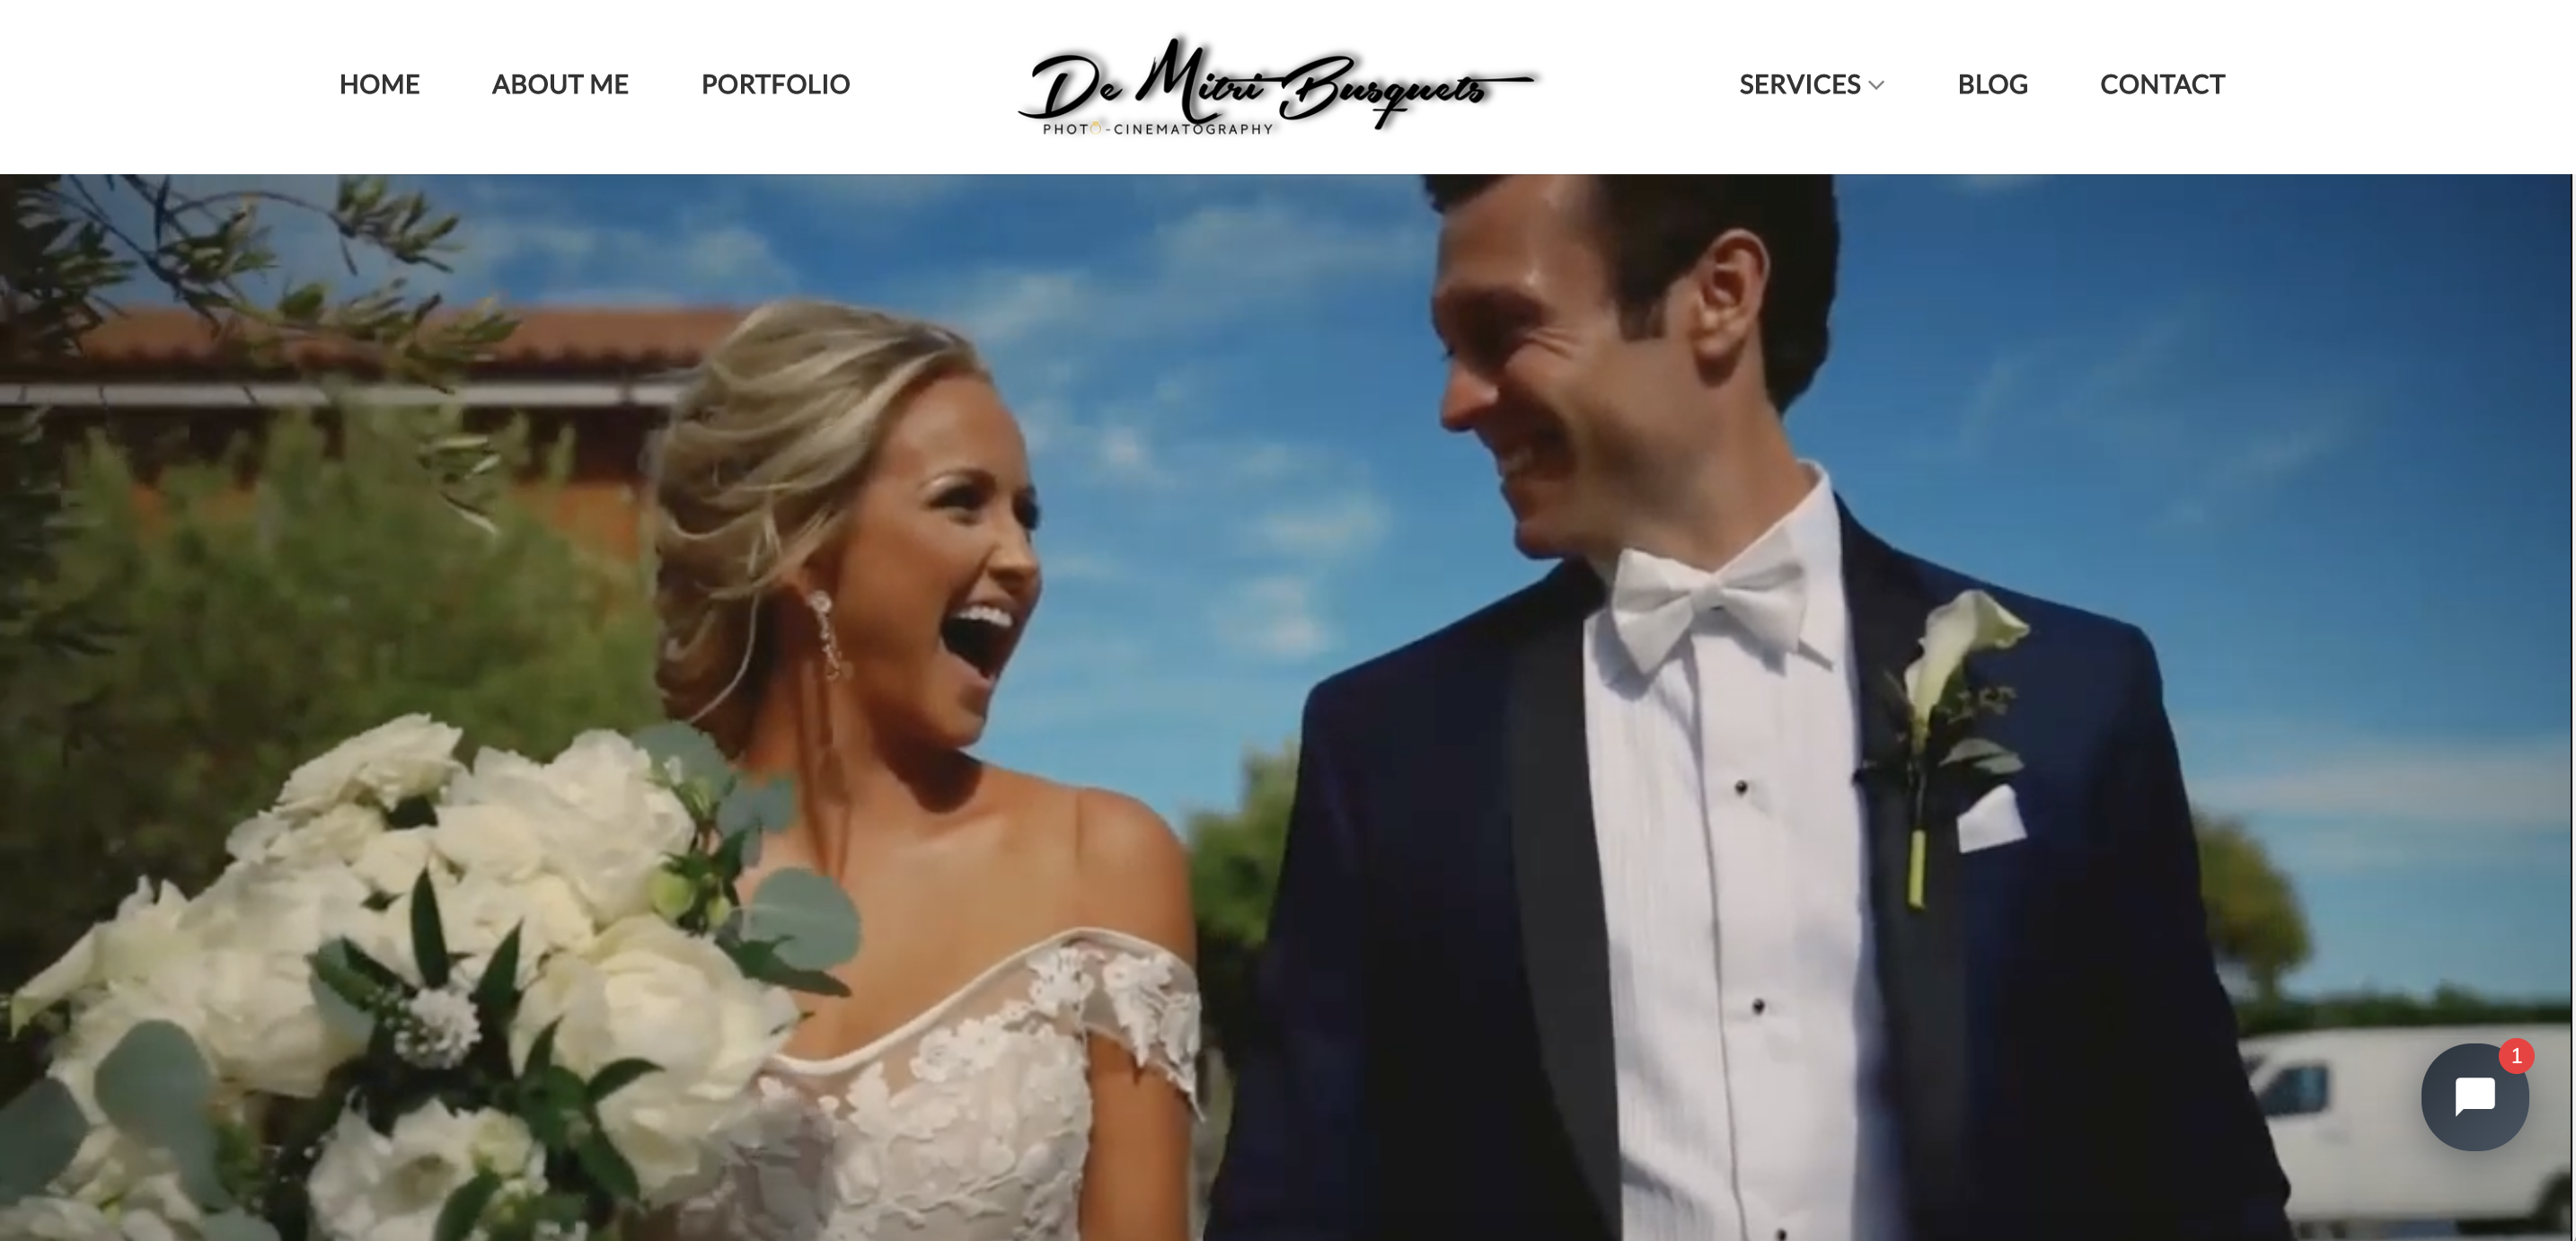 wedding photography website screenshot